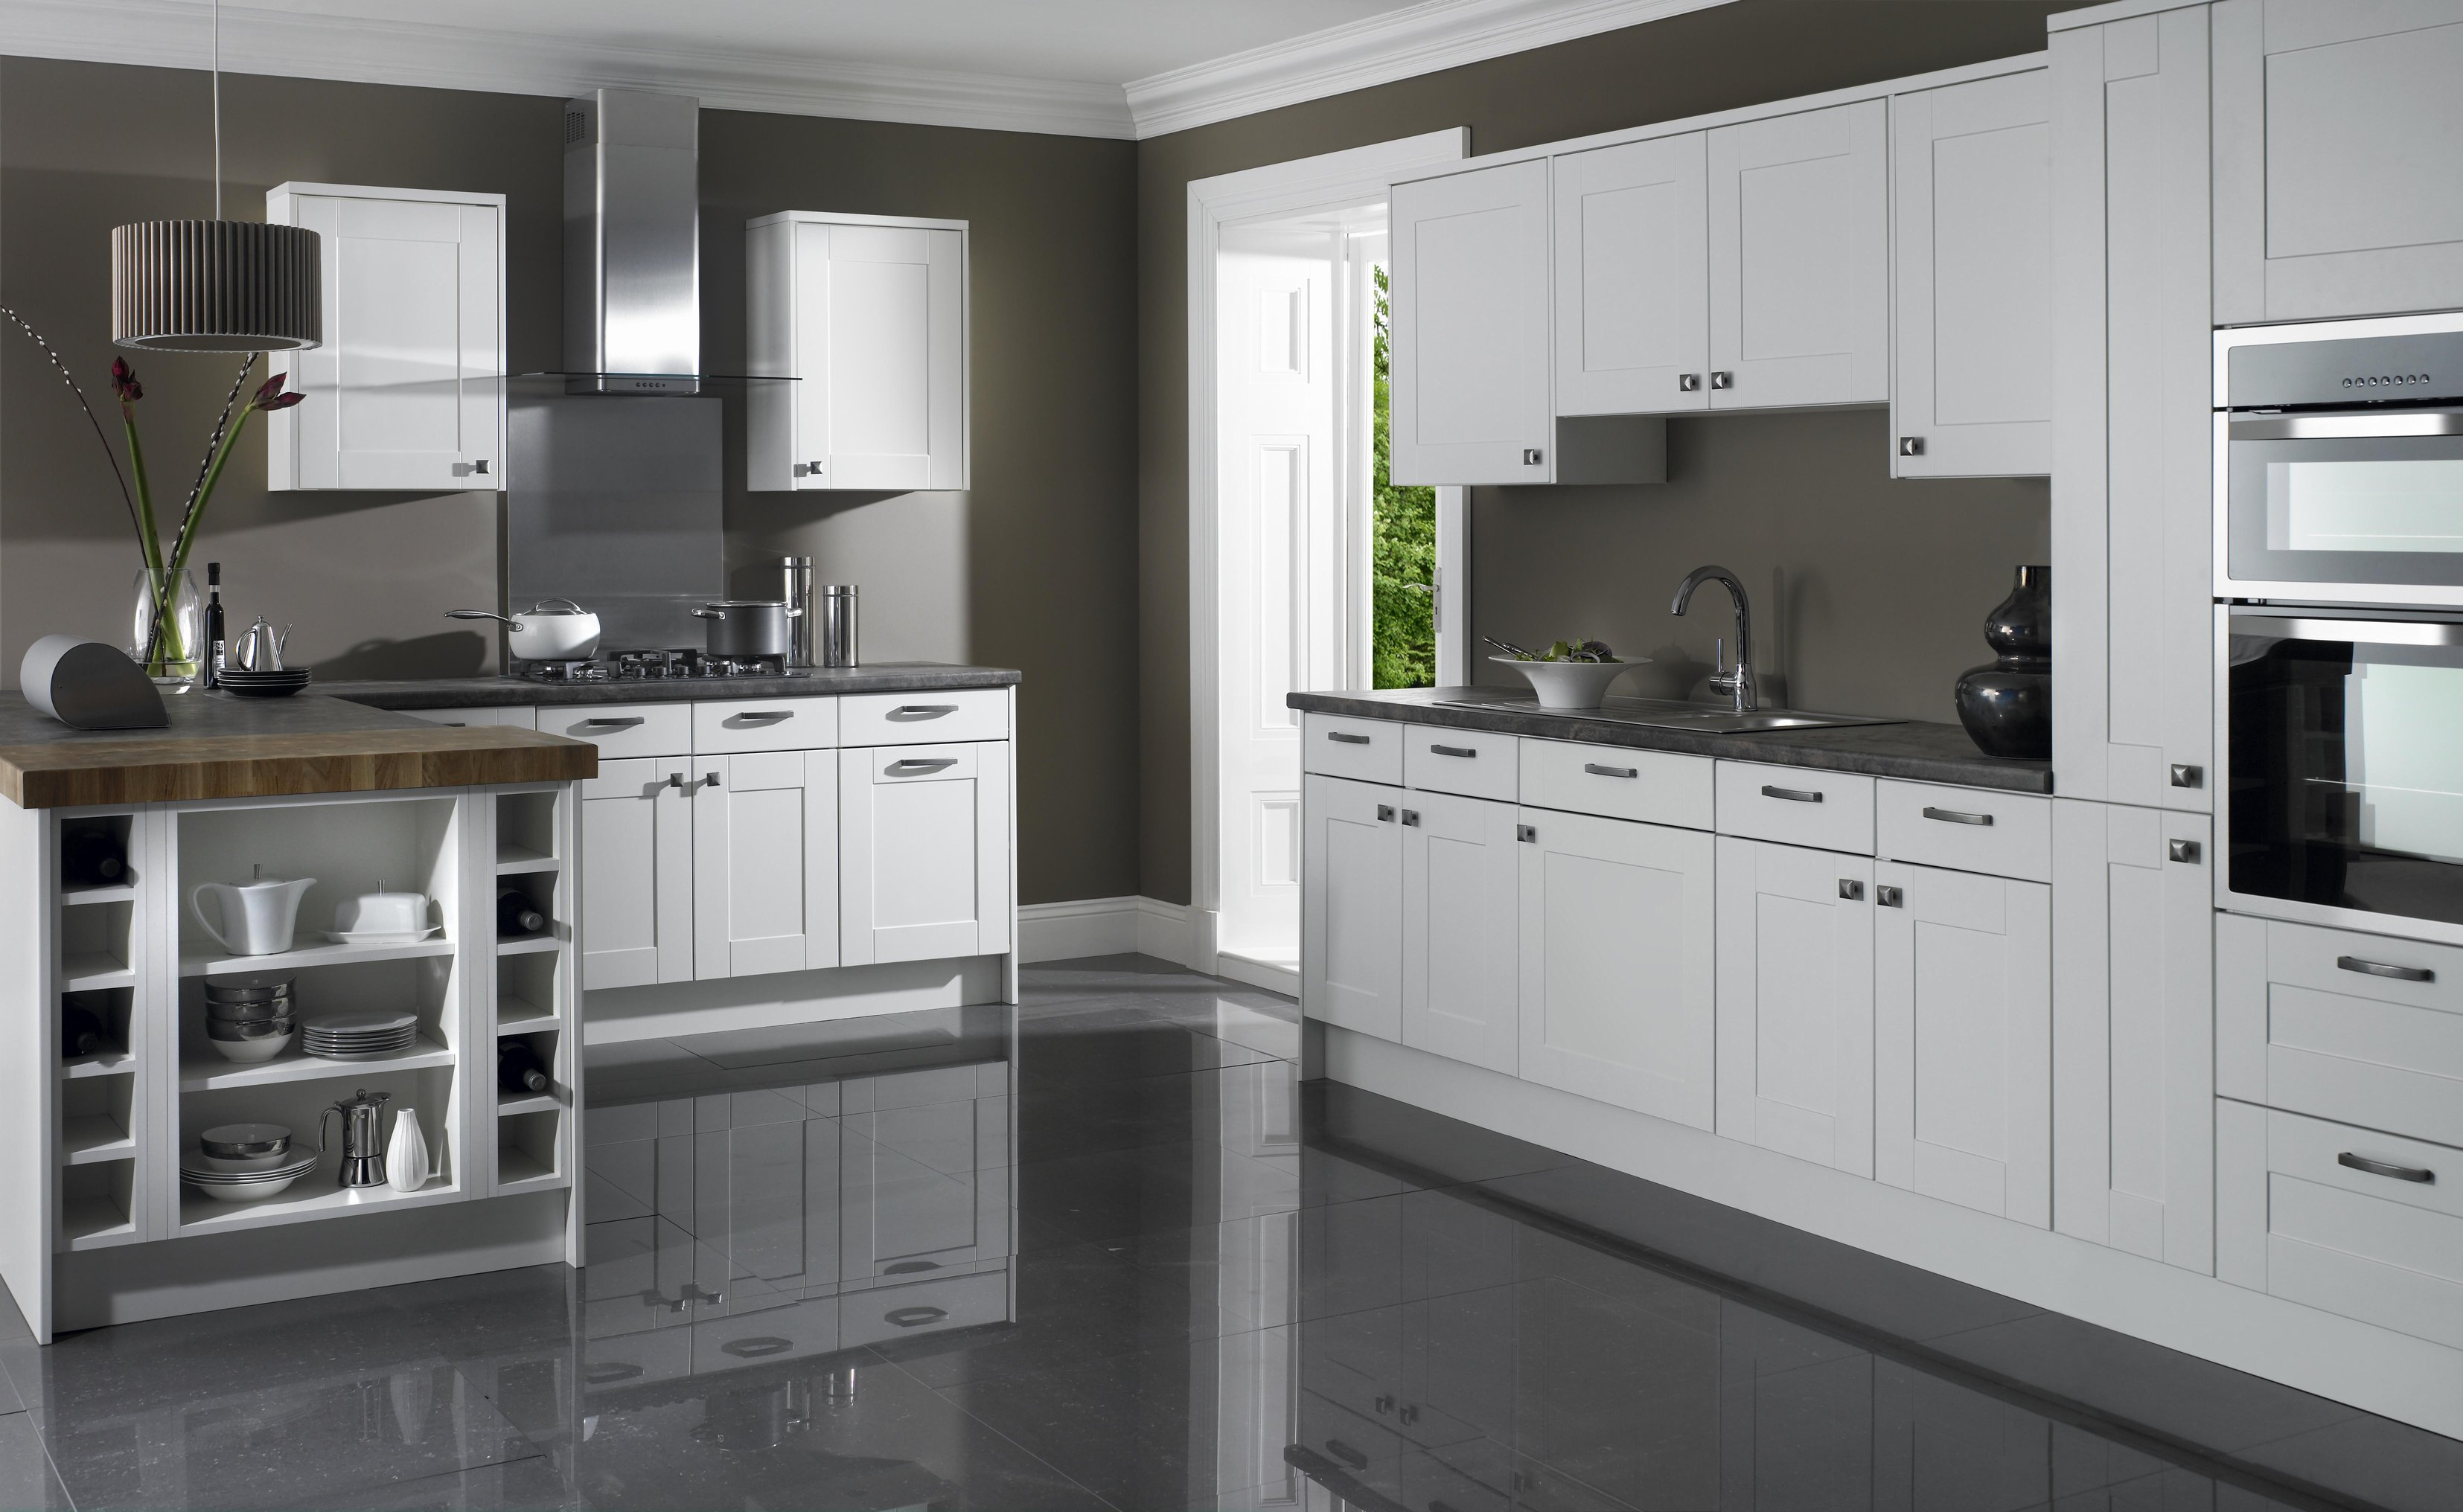 Hardware Styles For Shaker Cabinets